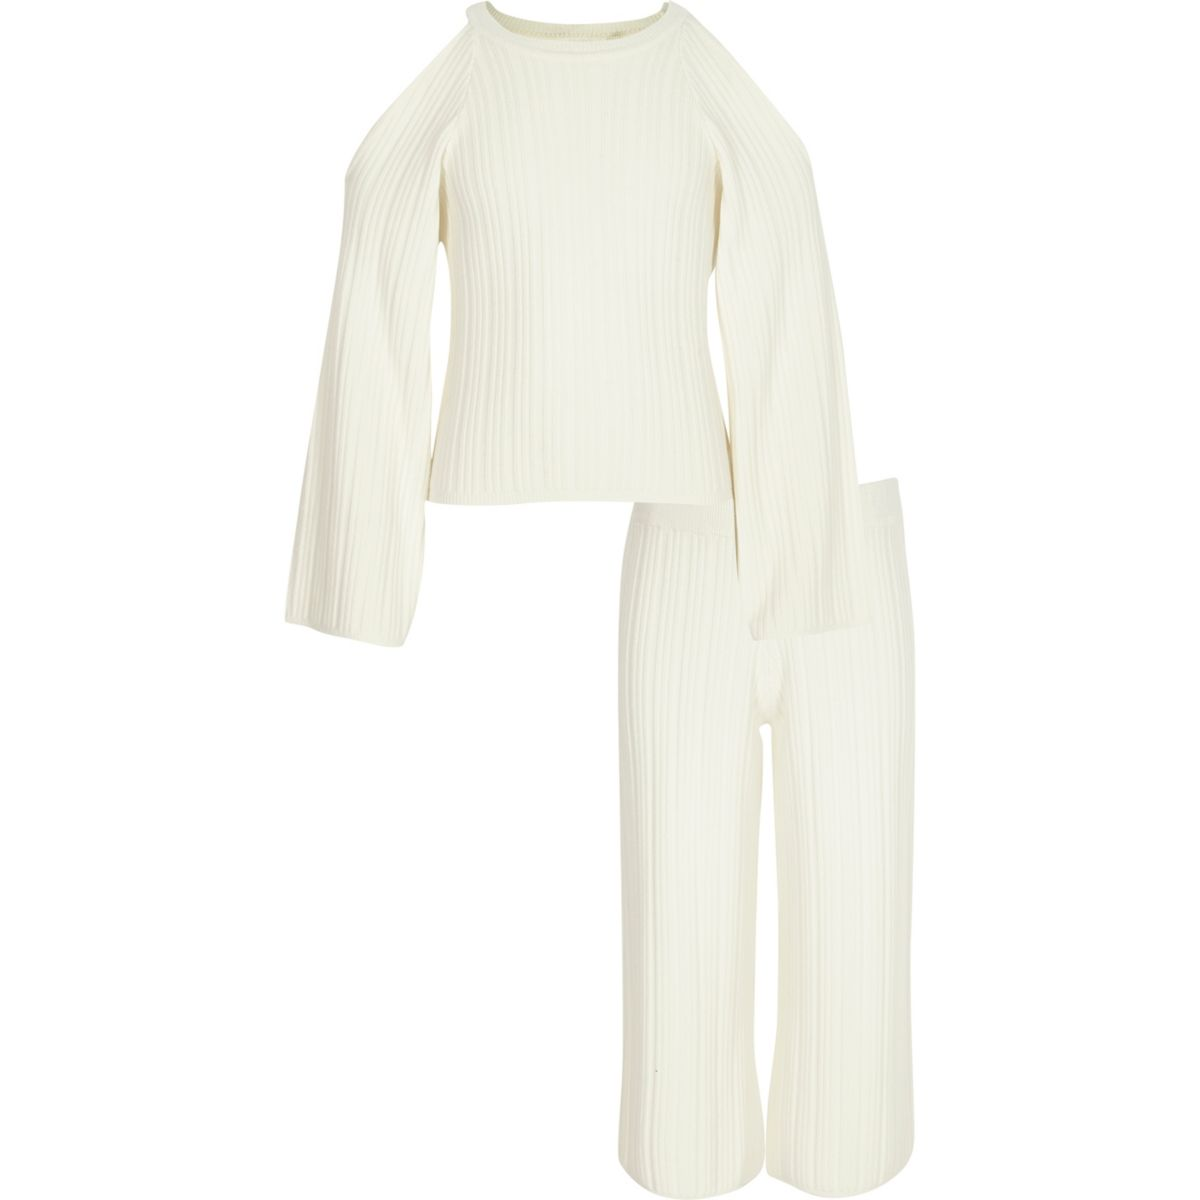 Girls cream knit sweater and culottes outfit